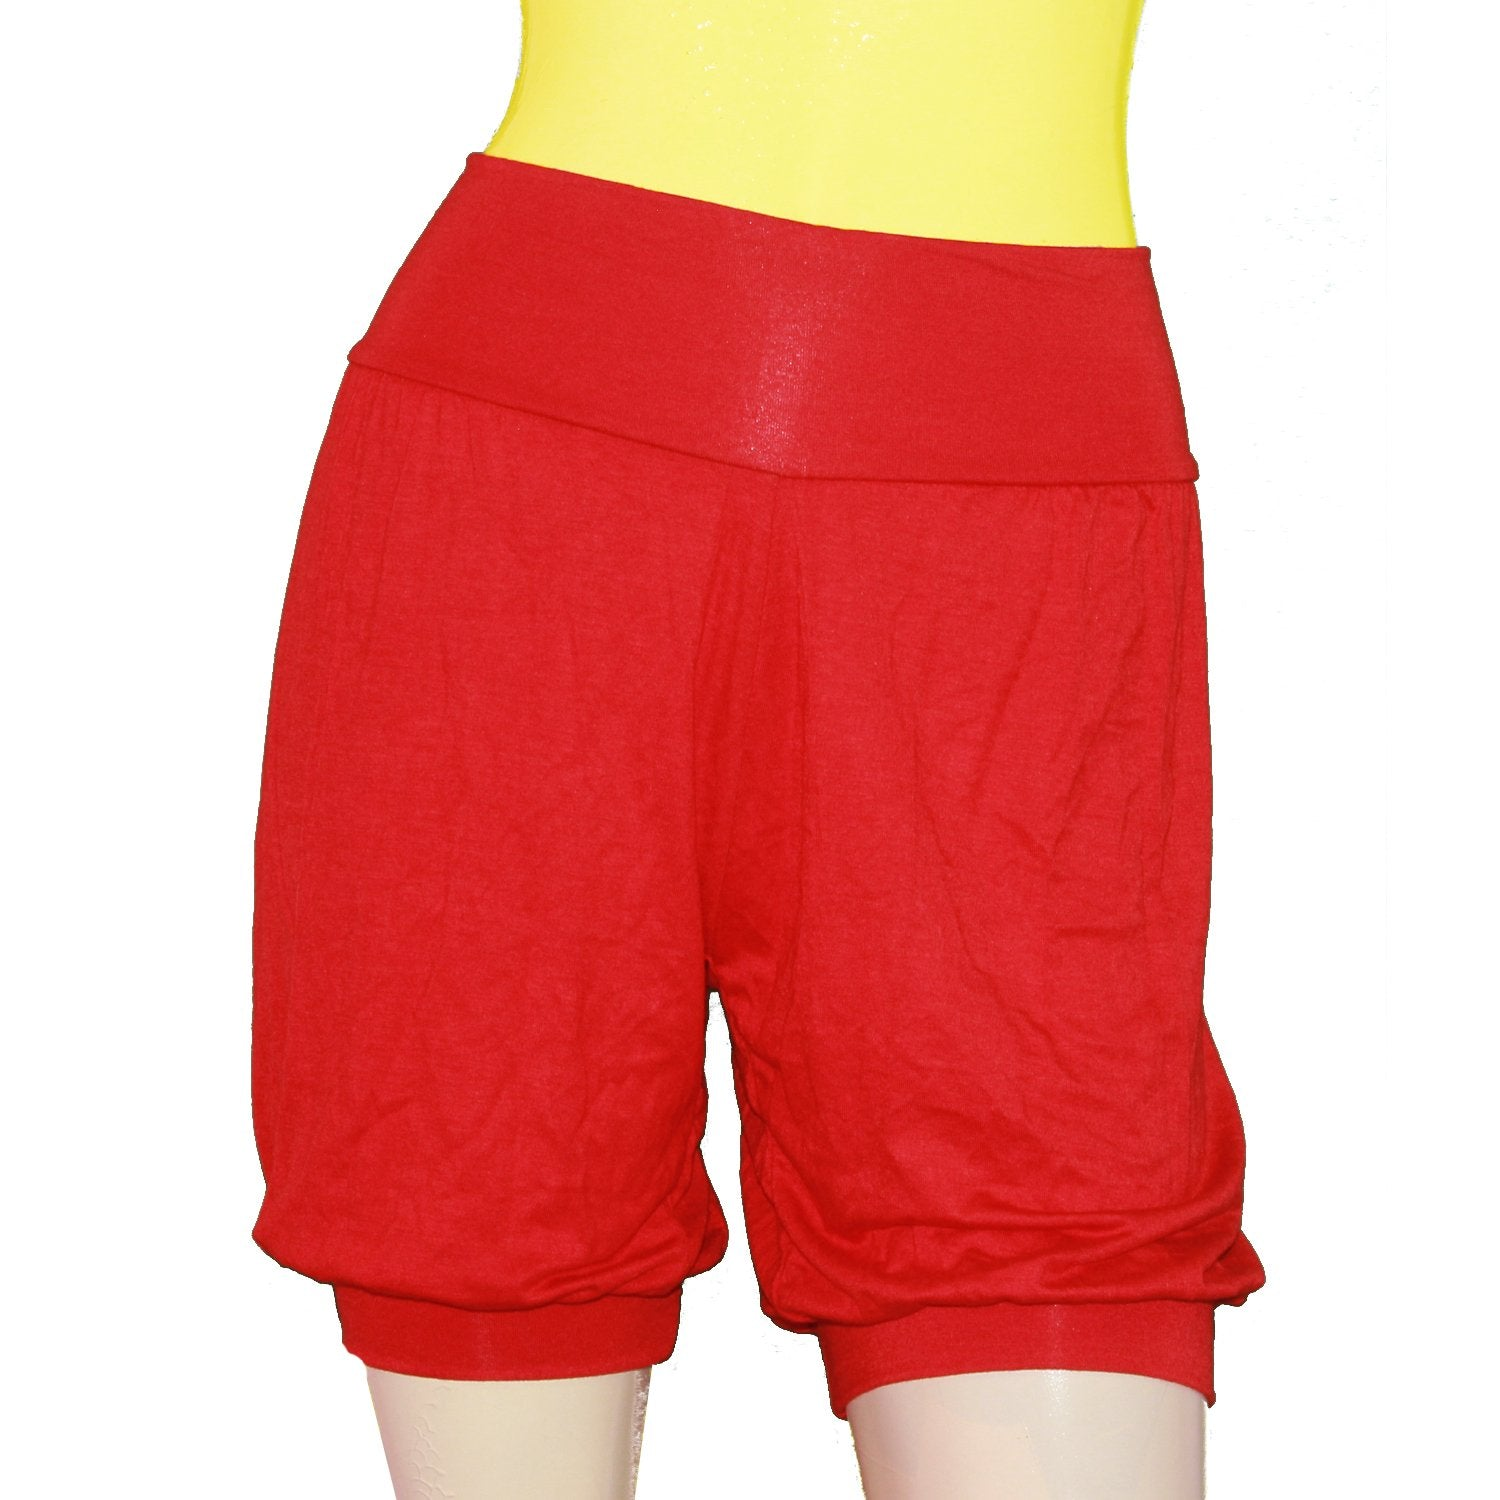 Red Iyengar yoga shorts Ballet dance jersey sexy beach pants